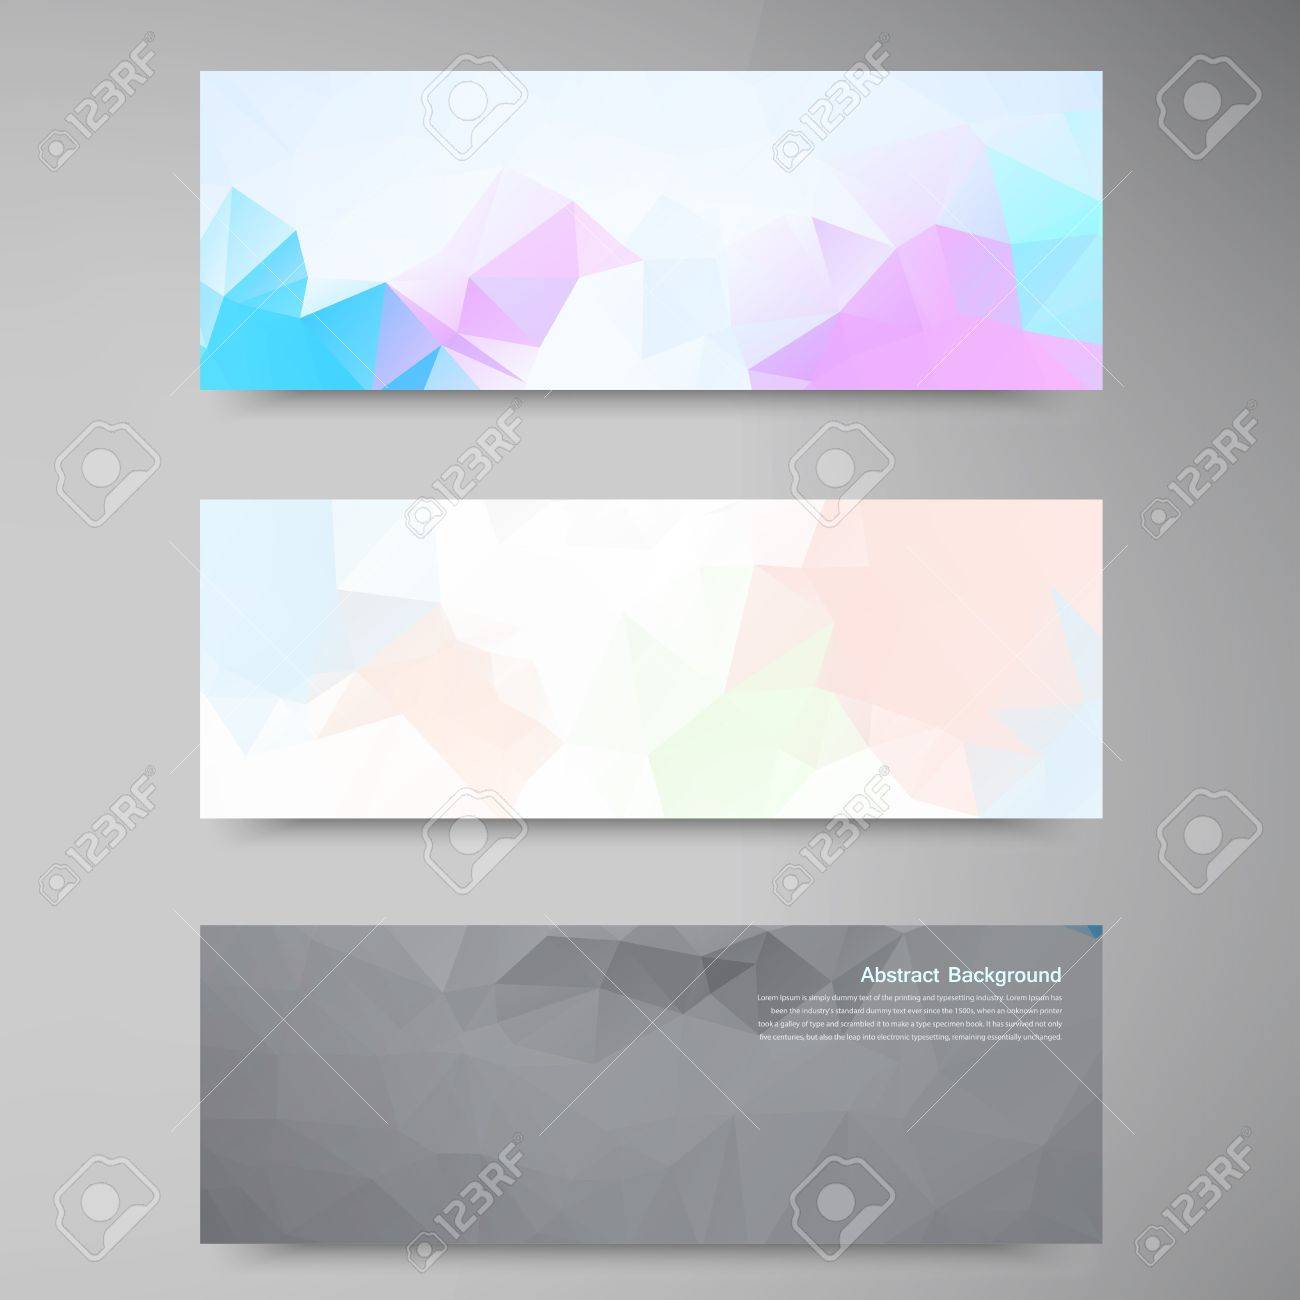 Vector abstract background. Polygonal pattern and object Stock Vector - 22071049